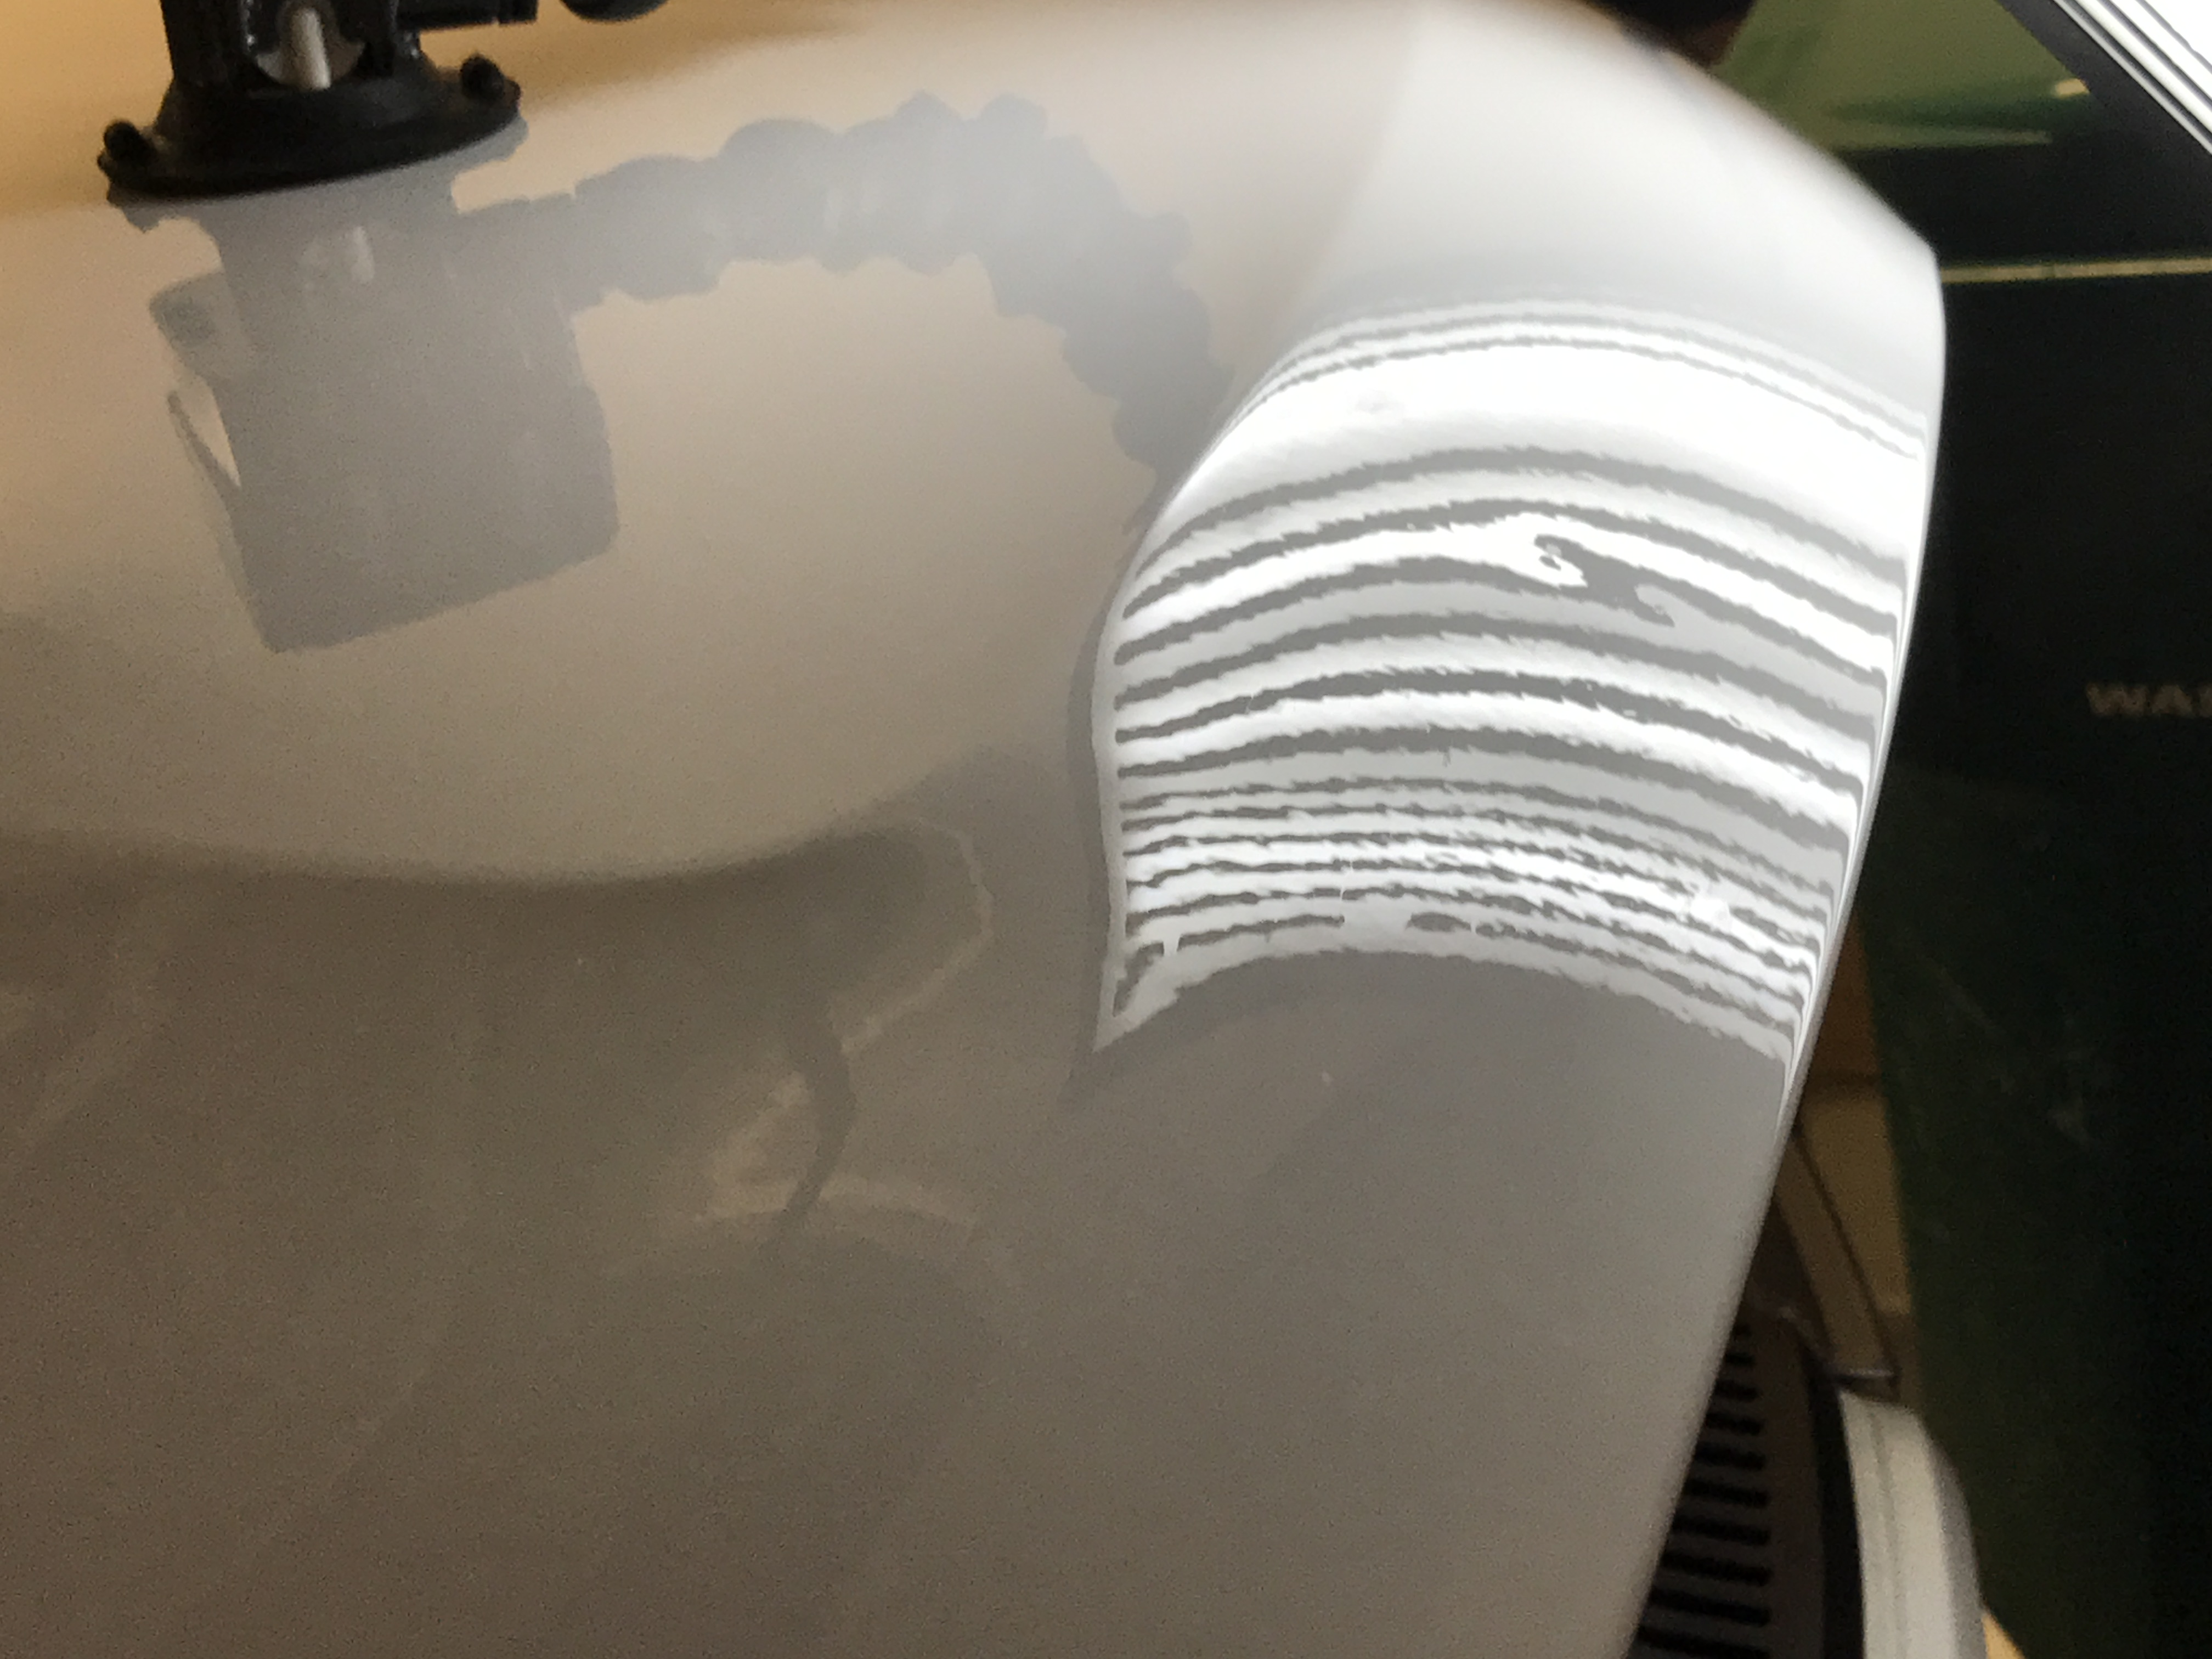 2015 Dodge Durango RT Paintless Dent Removal, Springfield IL http://217dent.com Before Image of Hood Dents